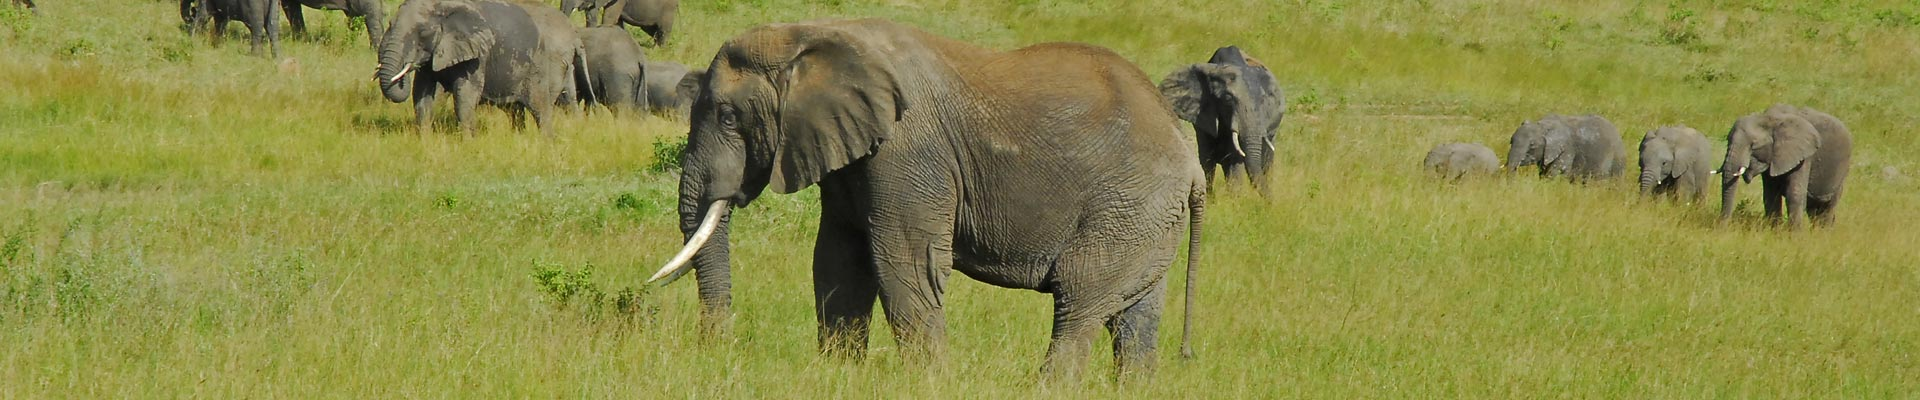 Paul McDougall Wildlife Photographer